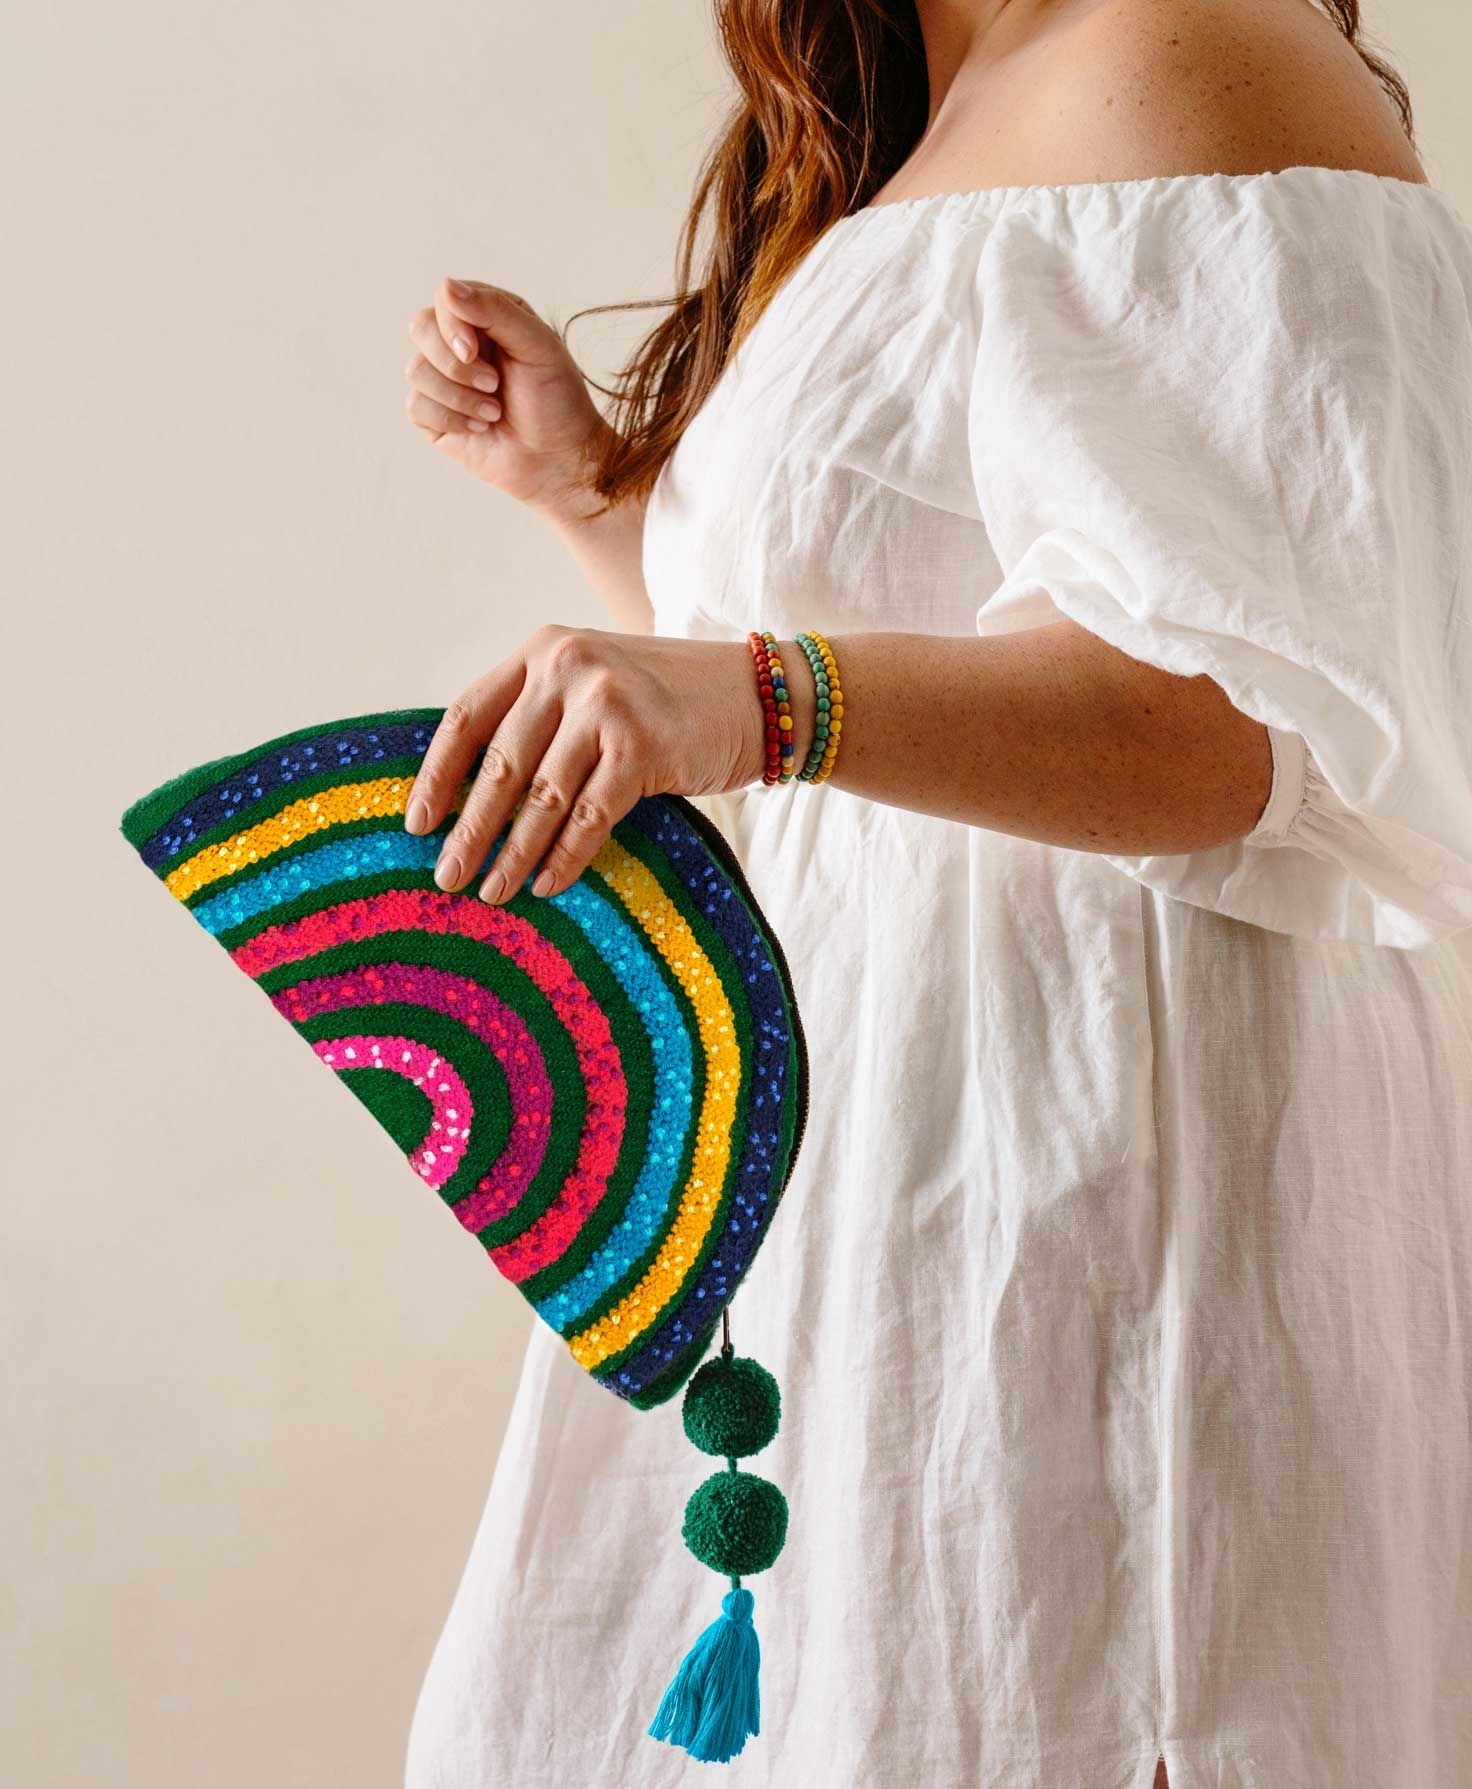 a model holding the rainbow clutch